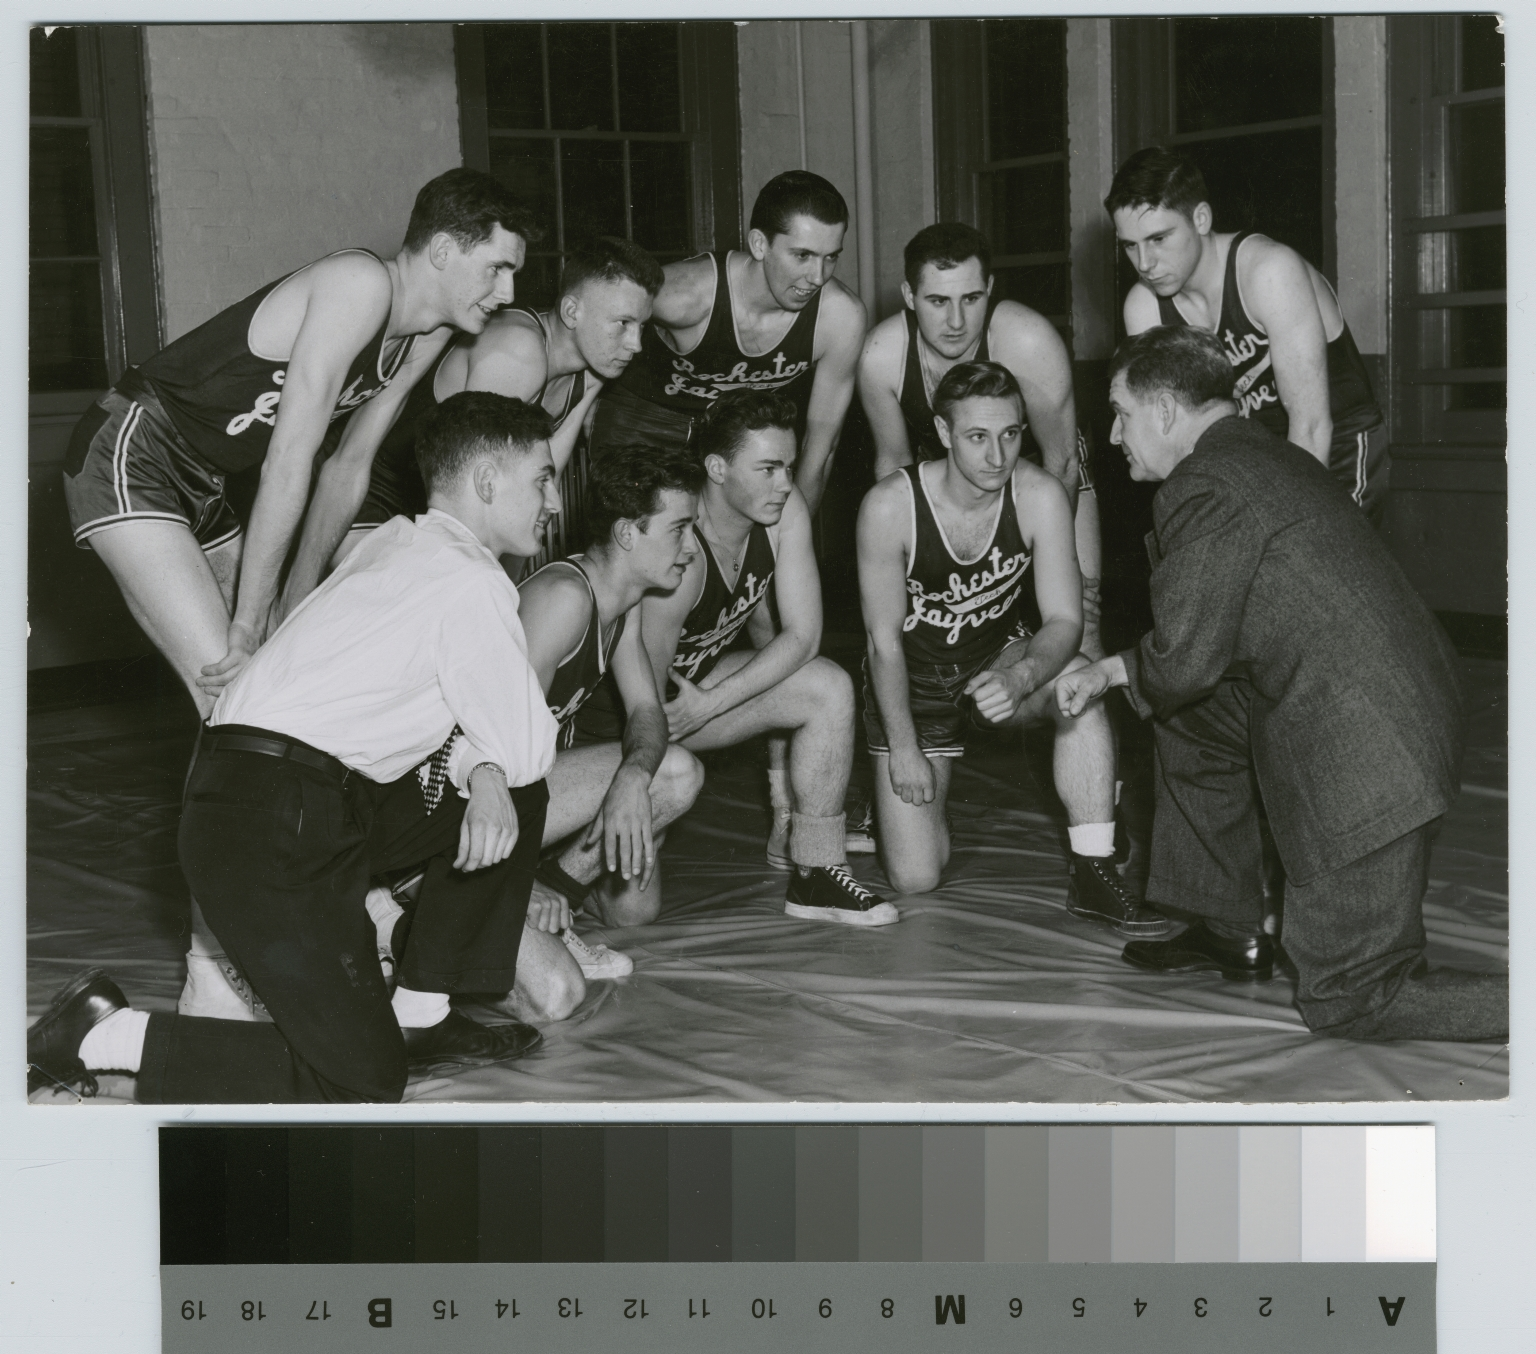 Student activities, group portrait of the Rochester Institute of Technology jayvees basketball team with coach Leo Fox